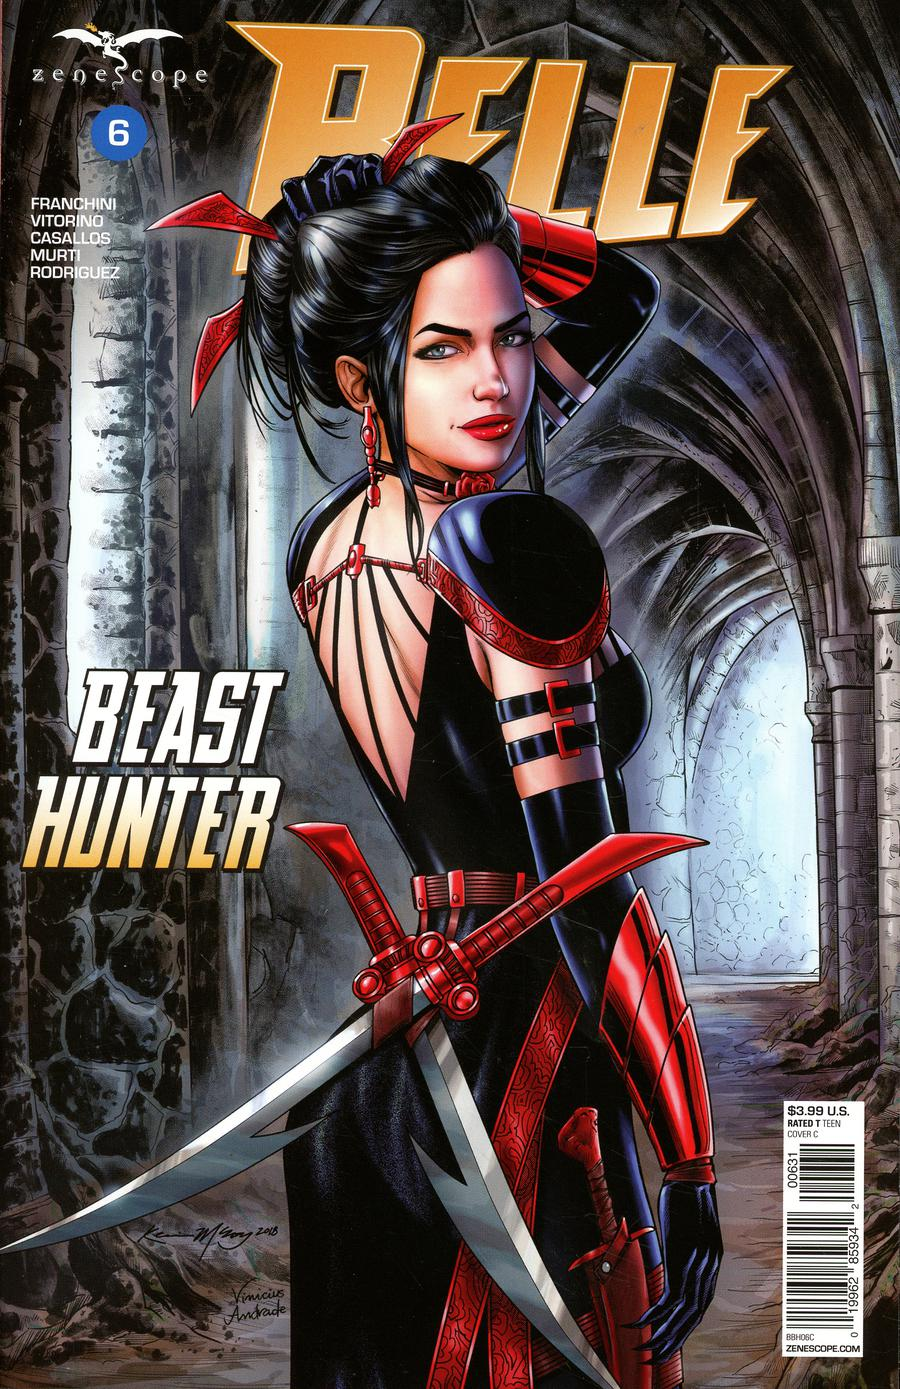 Grimm Fairy Tales Presents Belle Beast Hunter #6 Cover C Kevin McCoy